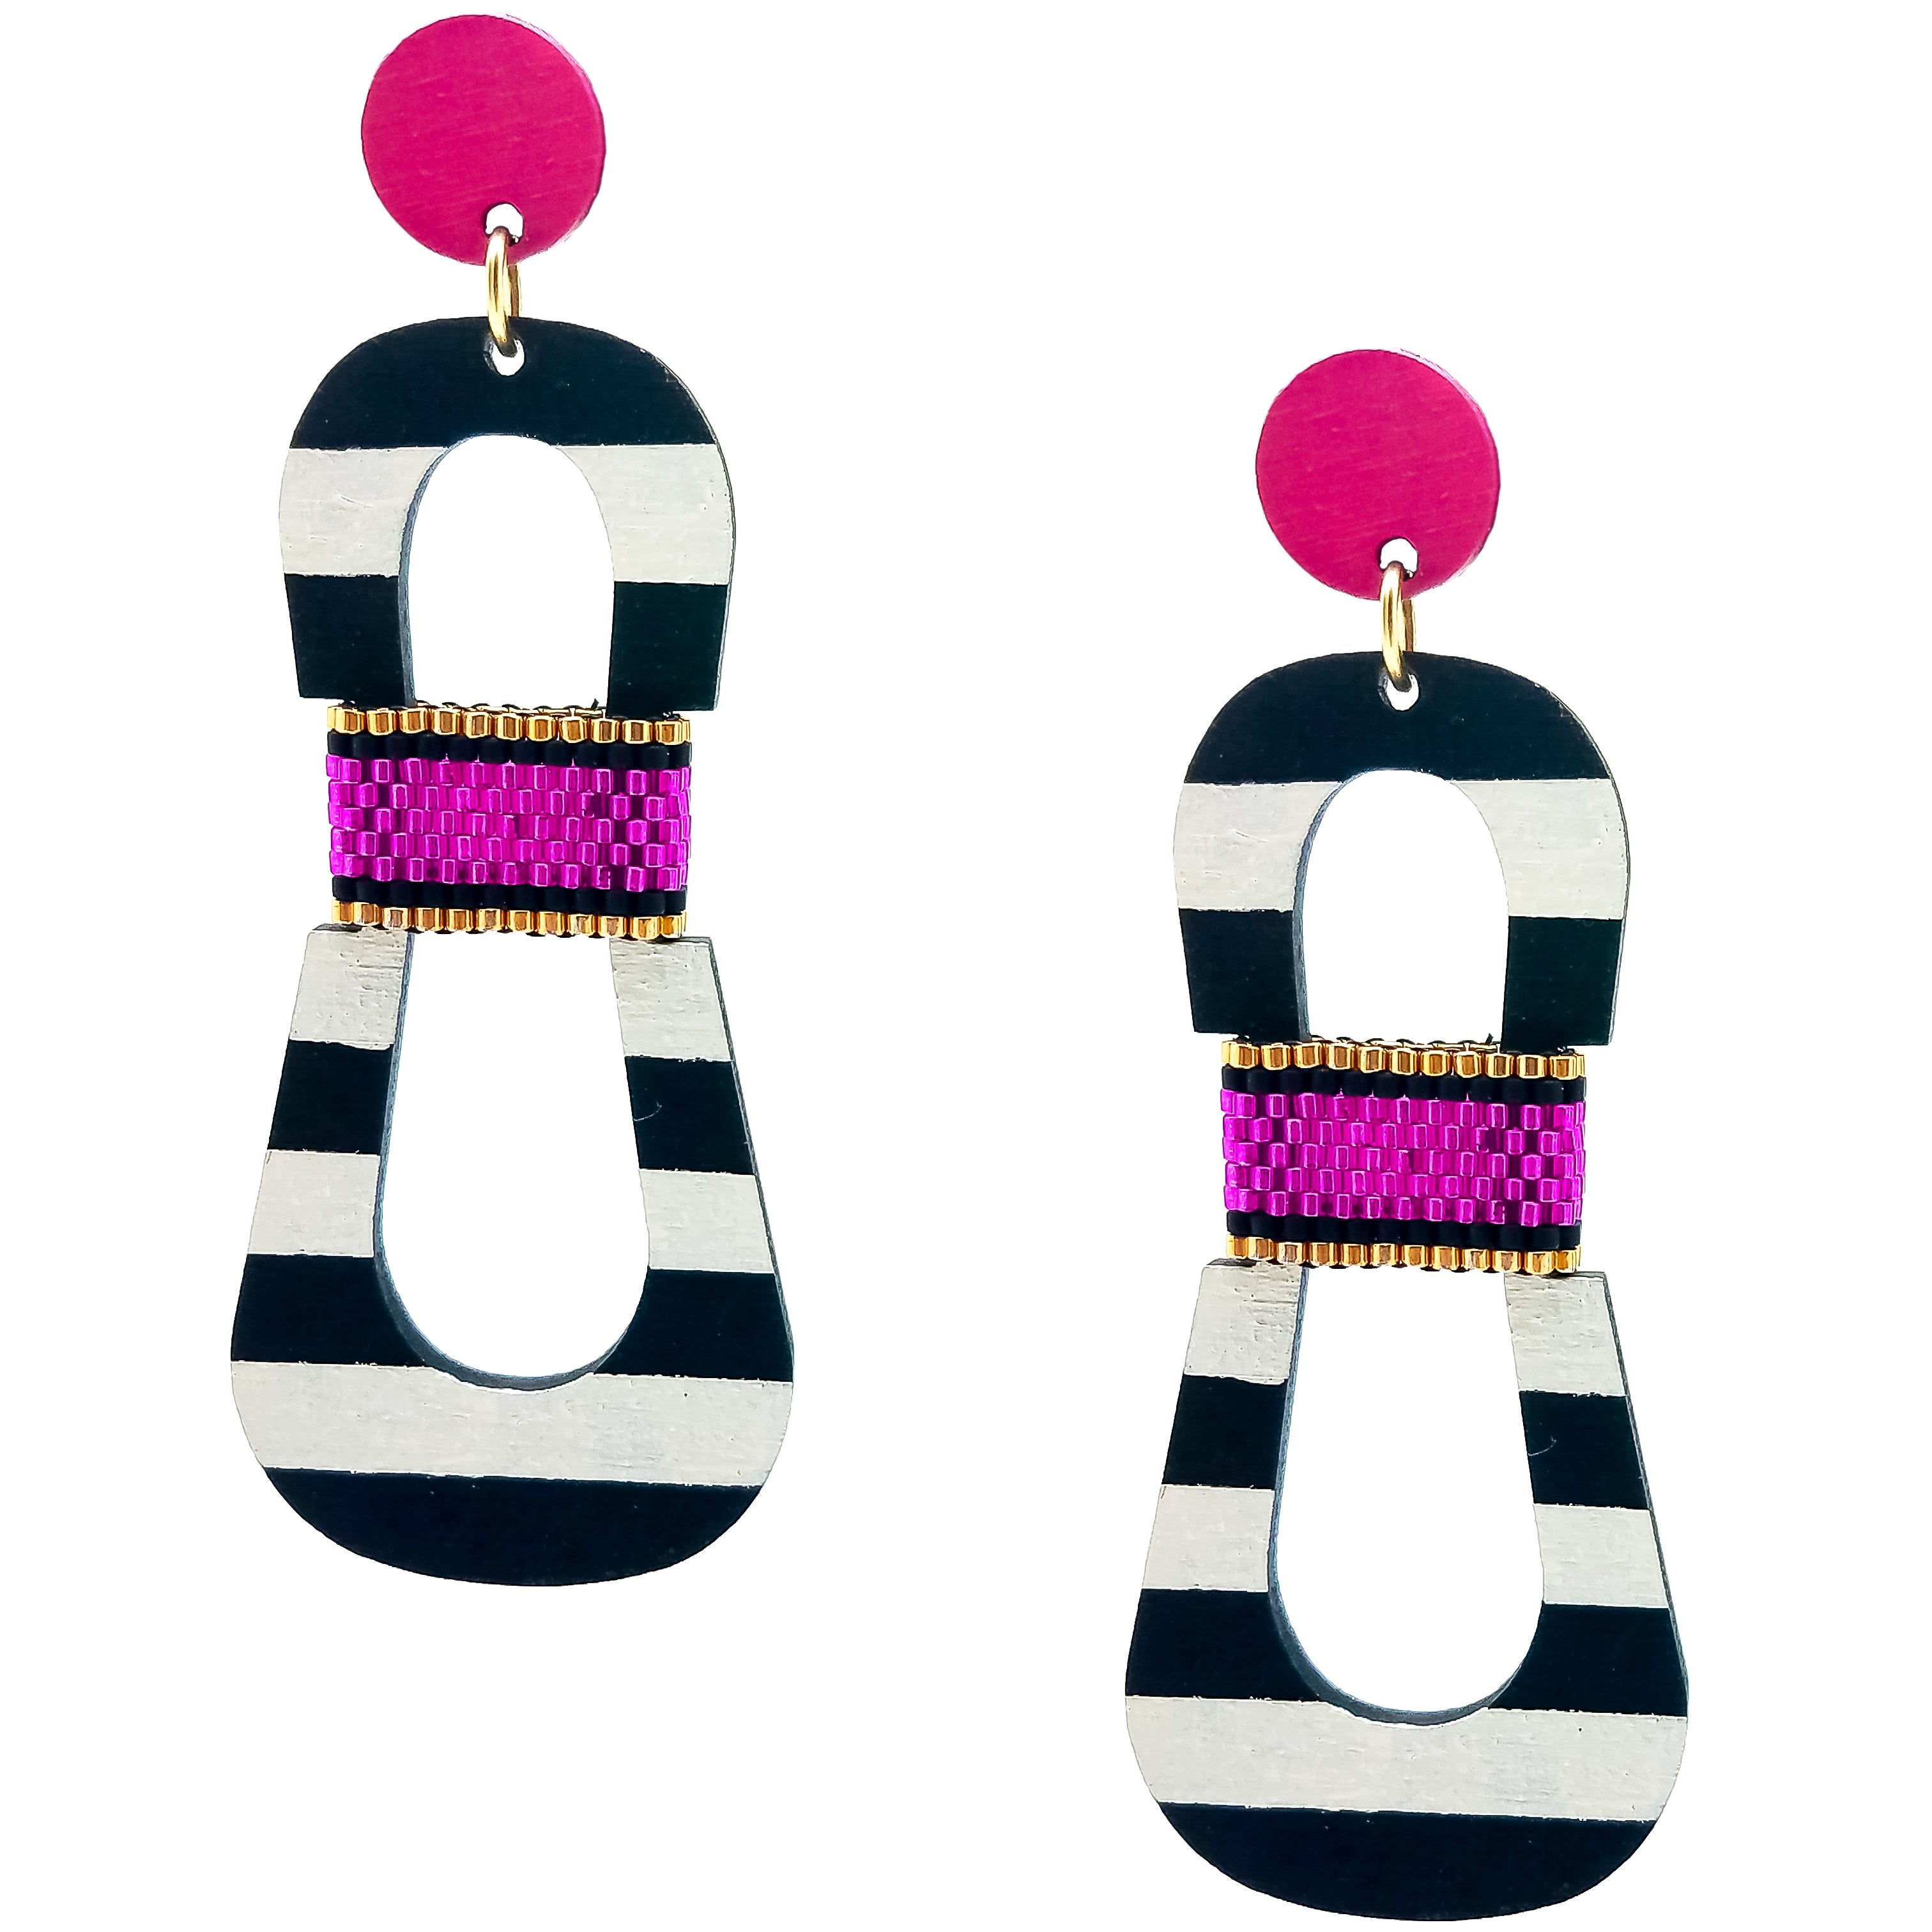 Modern, curvy, black and white striped statement earrings with hand-beaded magenta accents by the brand SCOTCHBONNET.